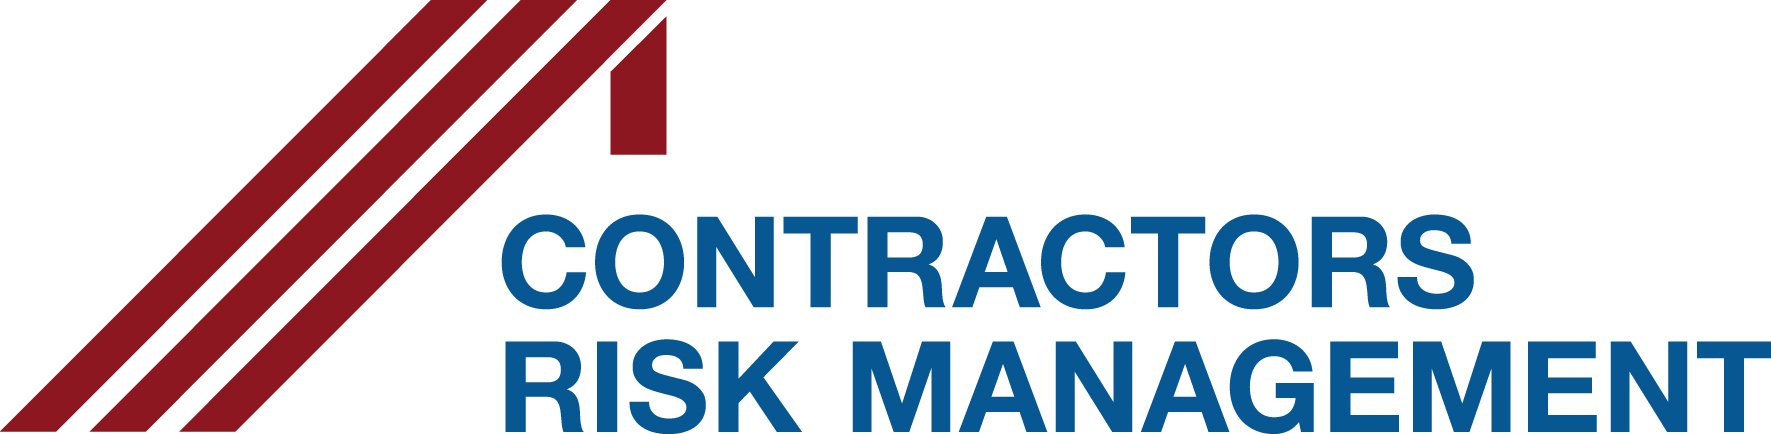 Company logo featuring three maroon diagonal lines above the name of the company, Contractors Risk Management, in blue.